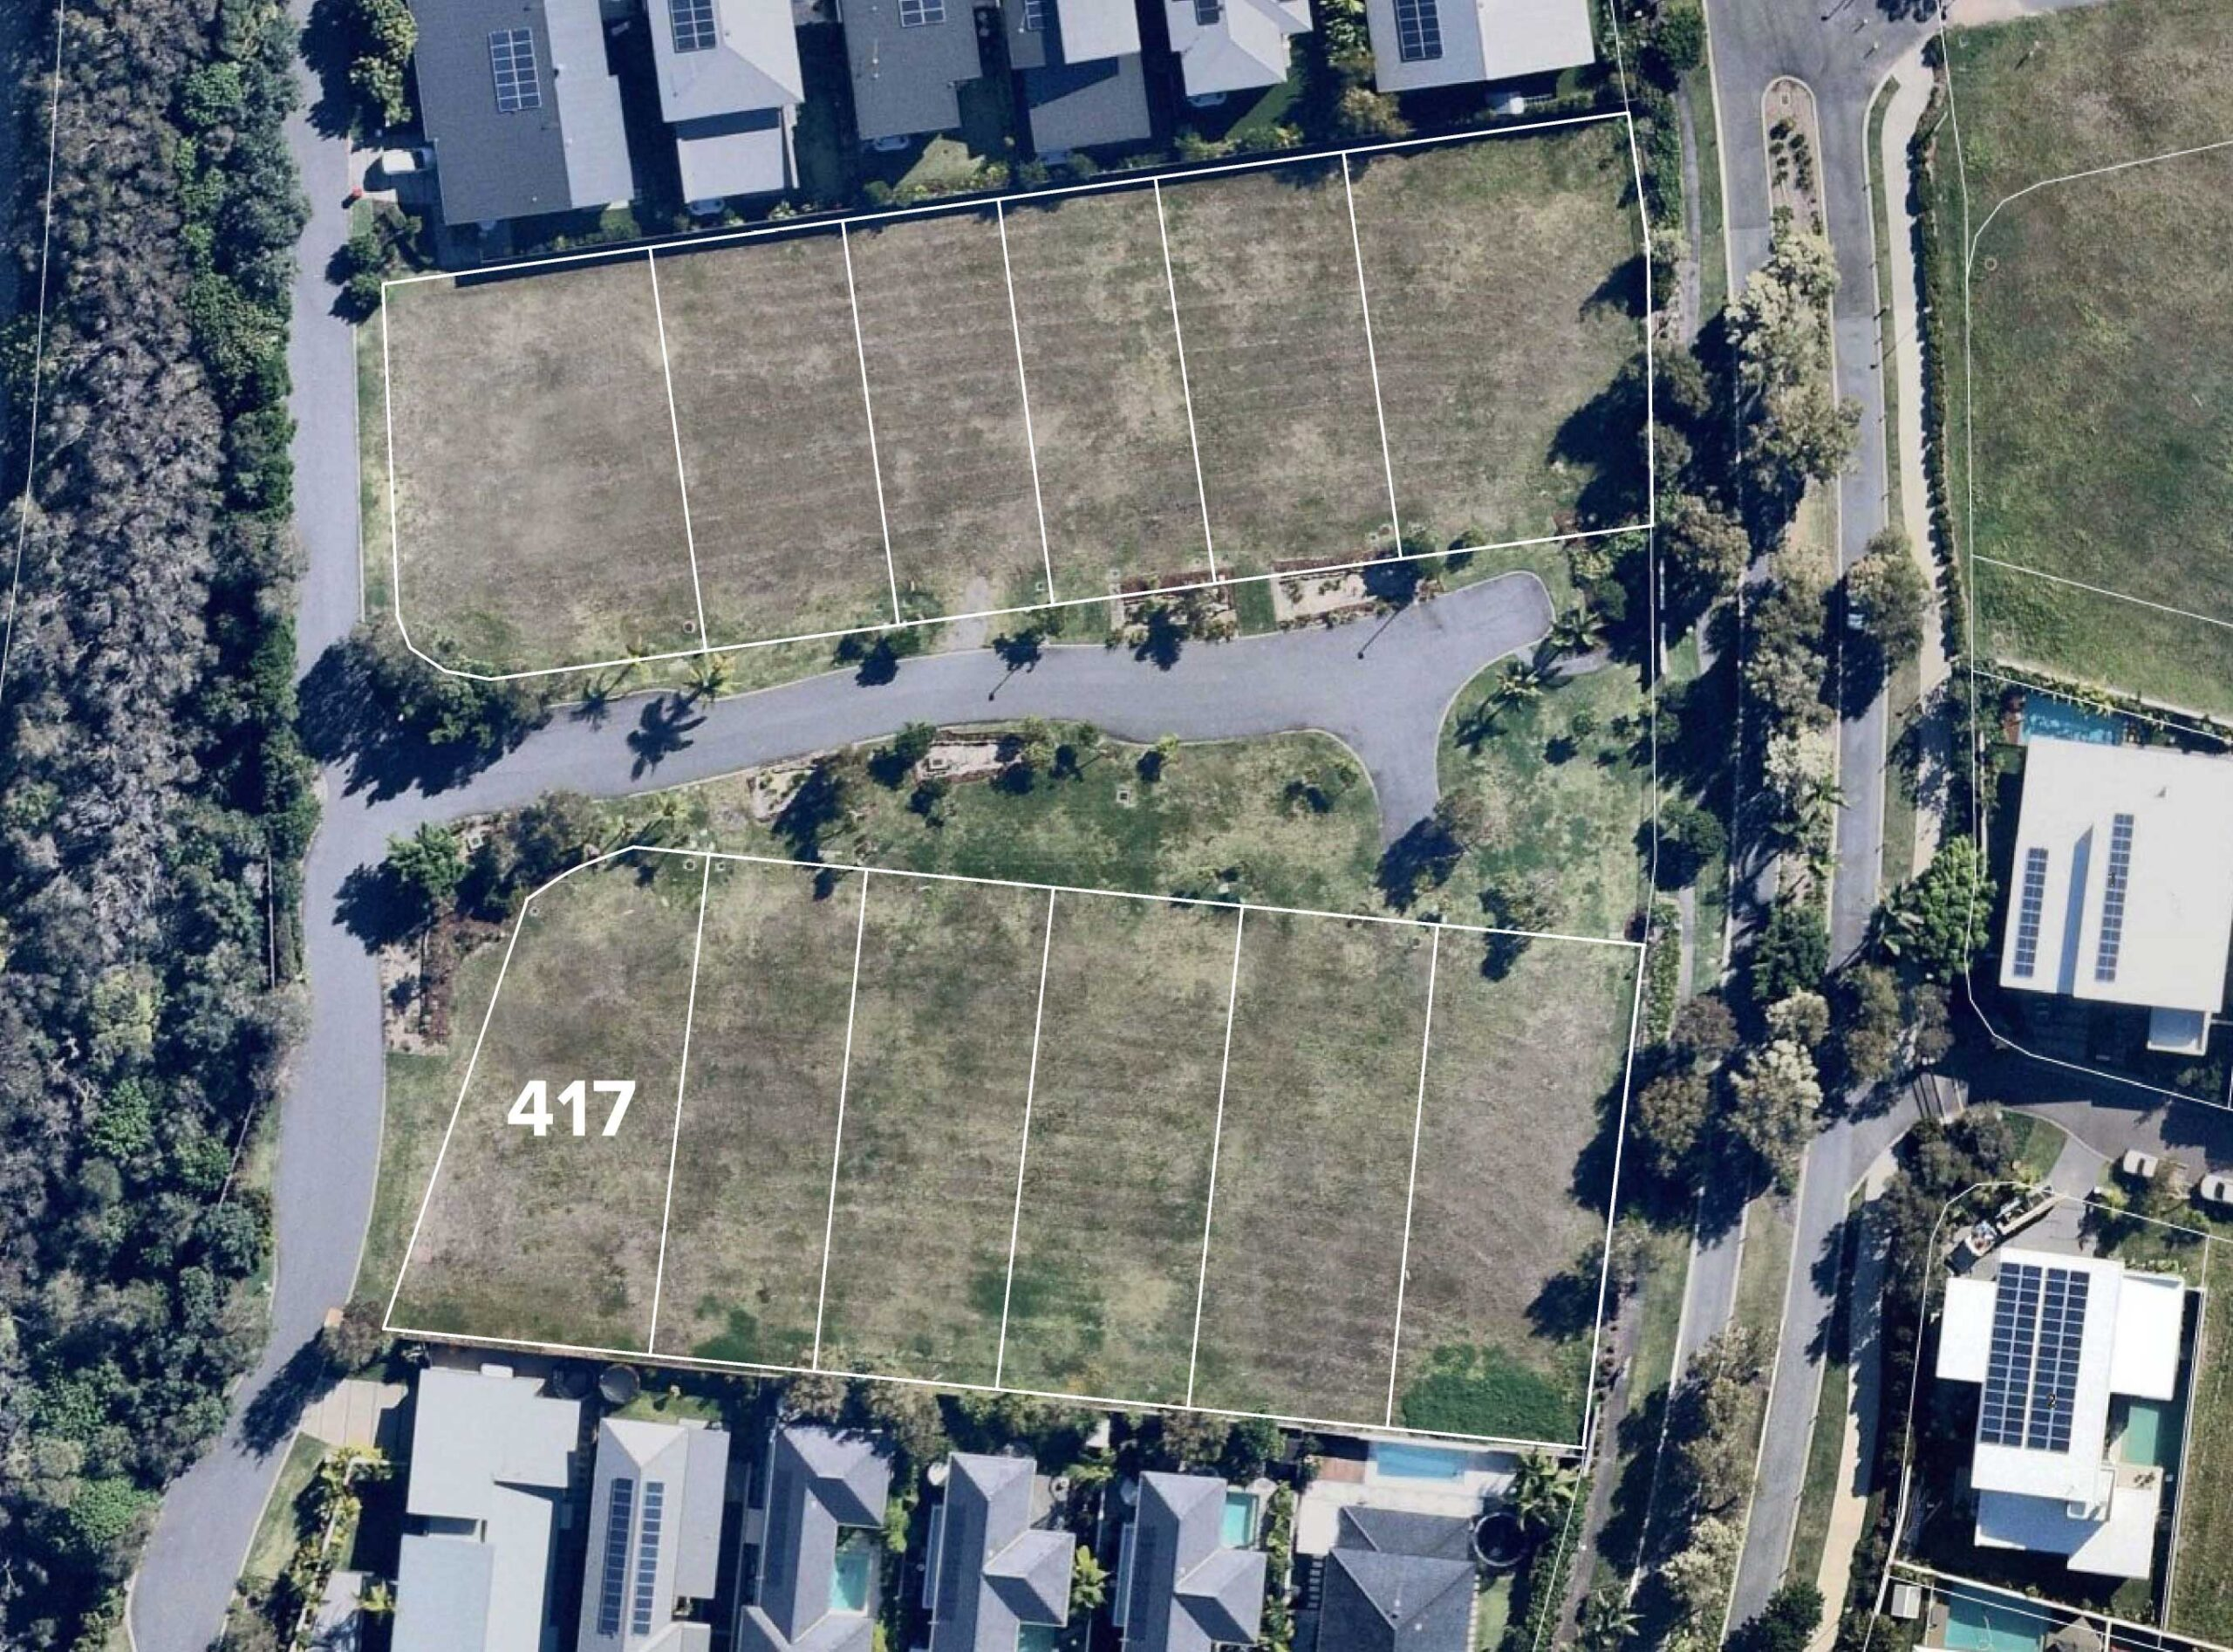 Aerial view of Lot 417